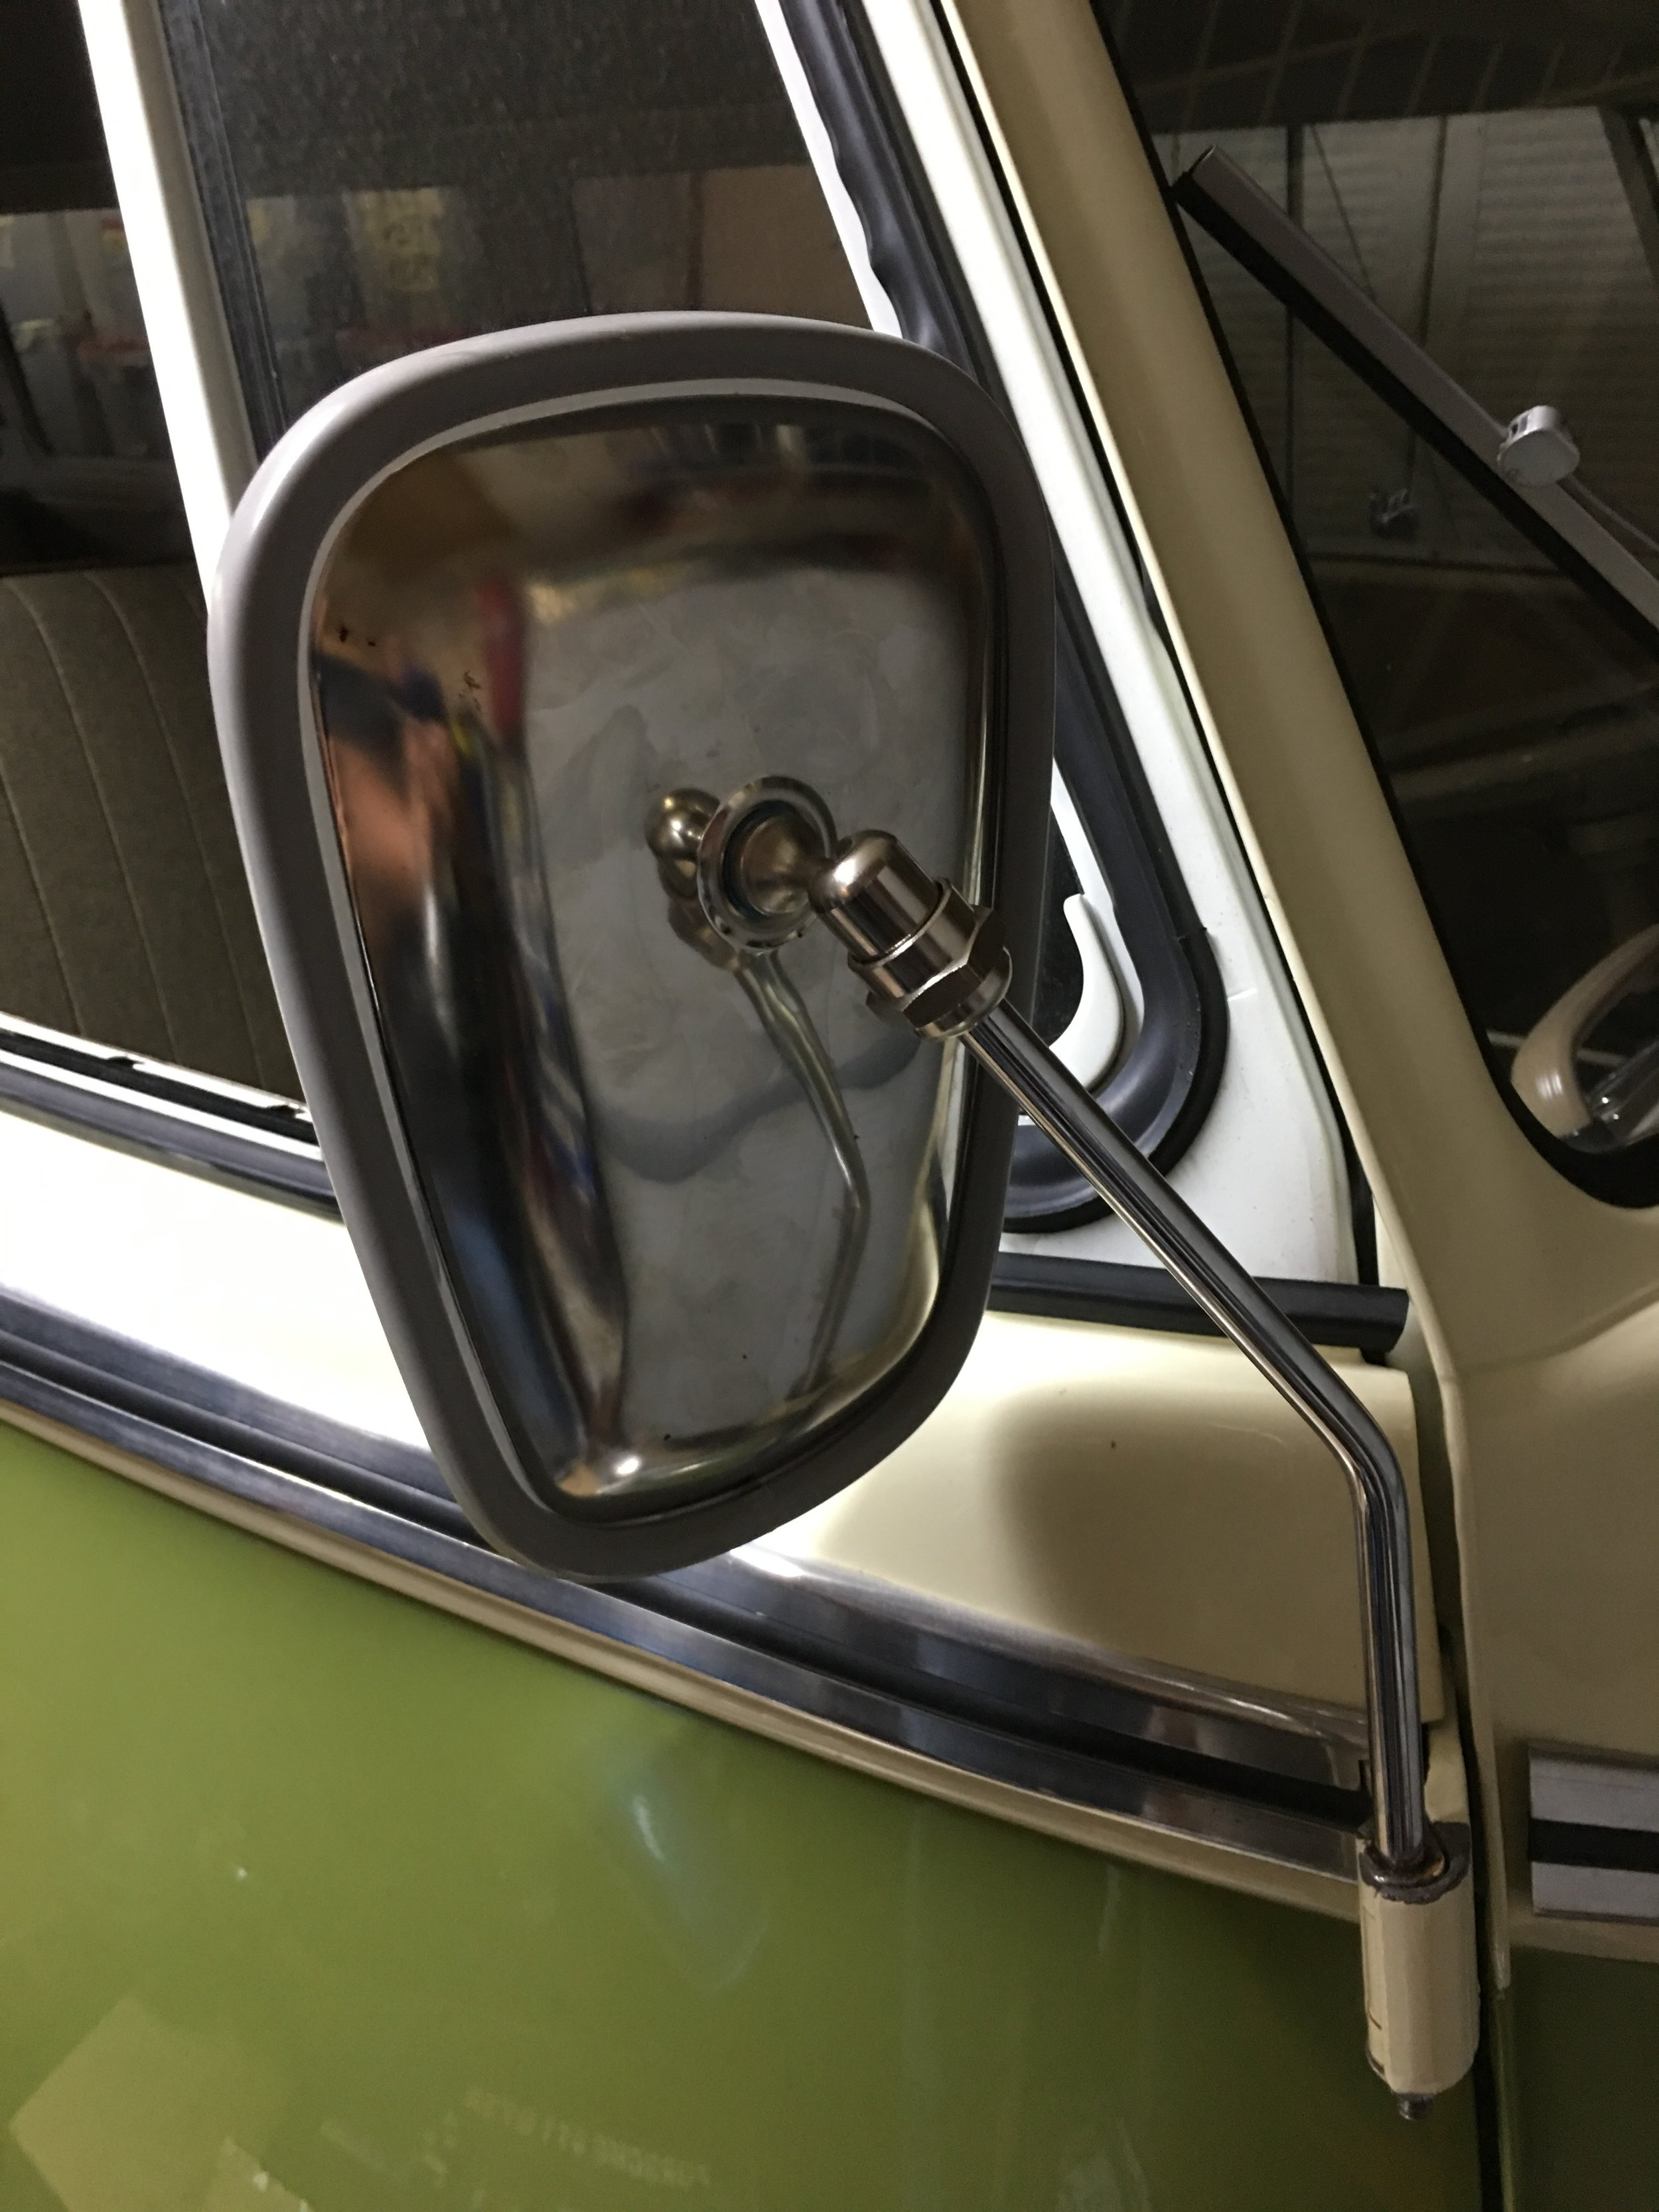 Now equipped with passenger side mirror !